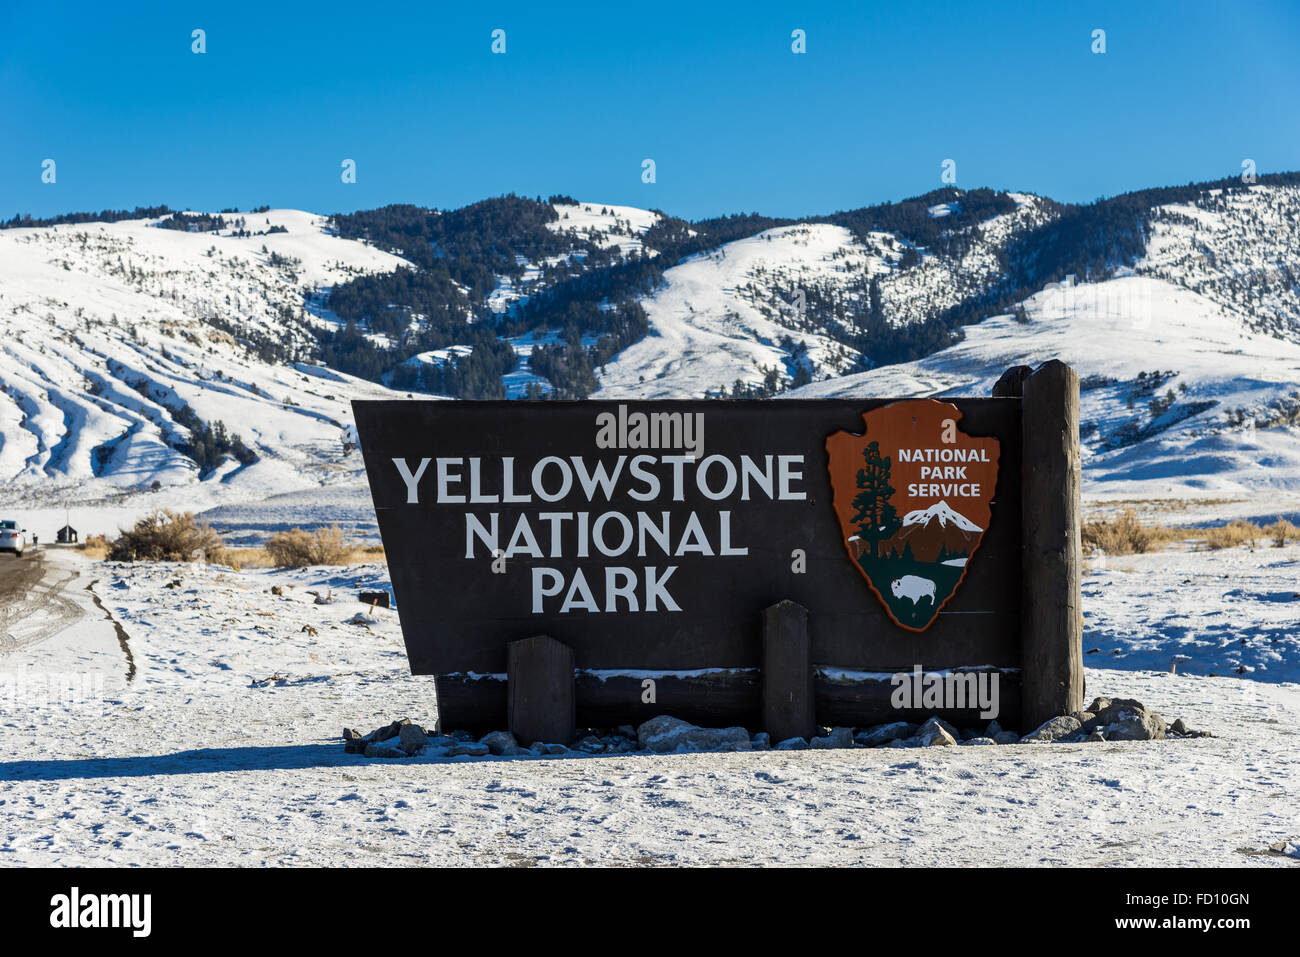 Yellowstone National Park Sign At The Entrance In Winter